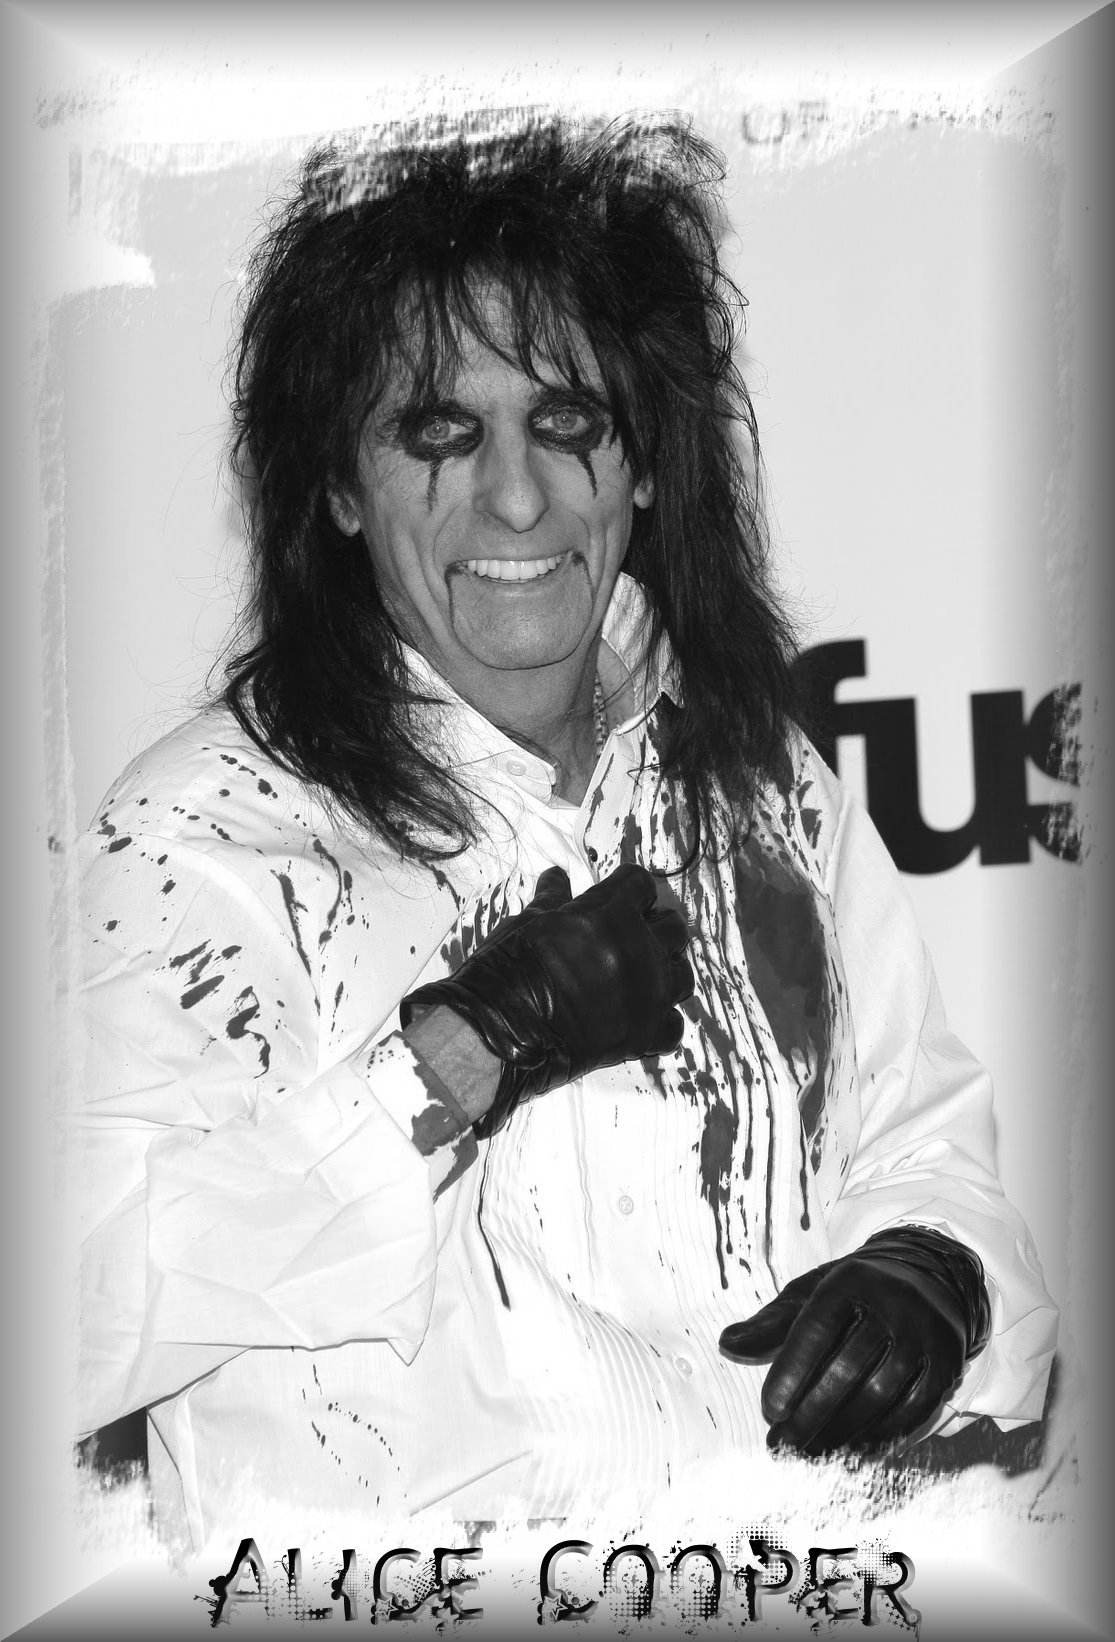 Vuelve el mitico Alice Cooper con Welcome to my Nightmare